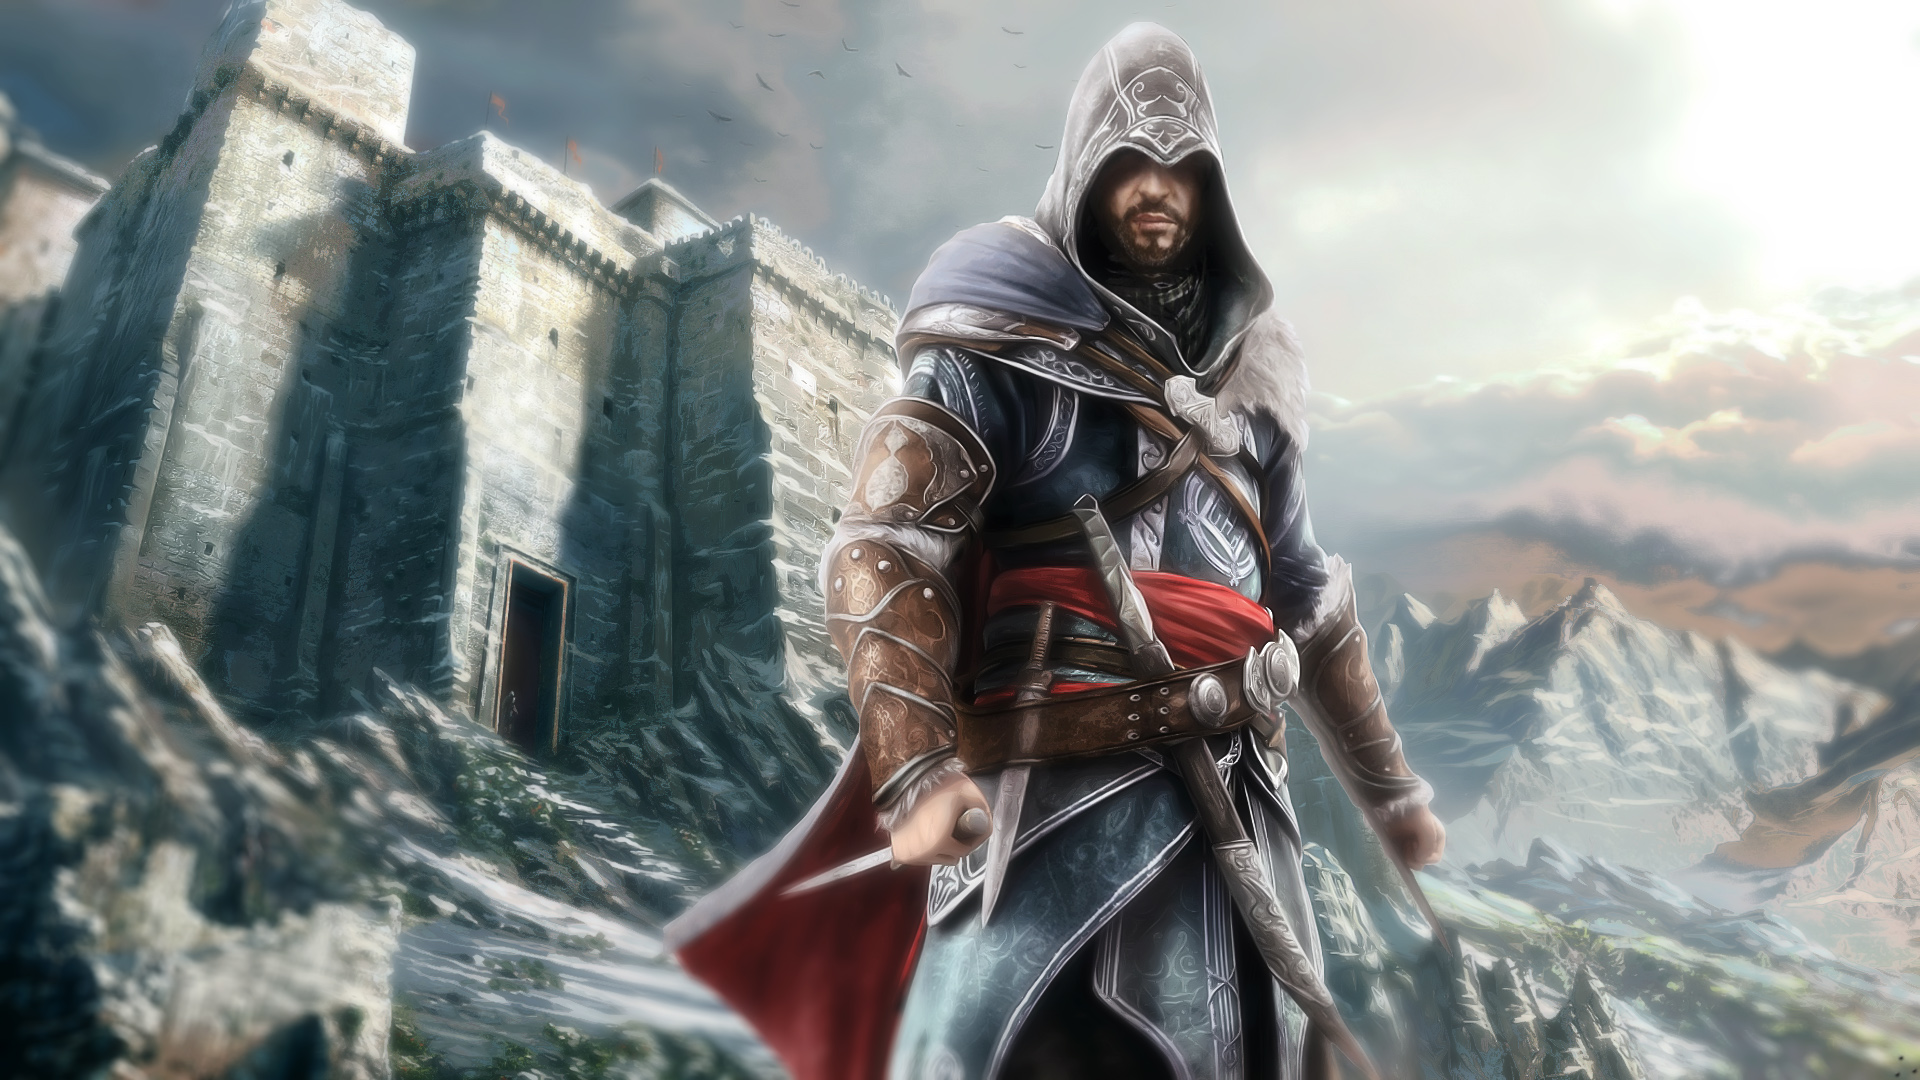 Assassin's Creed: Revelations HD Wallpaper   Background Image   1920x1080   ID:319839 - Wallpaper Abyss